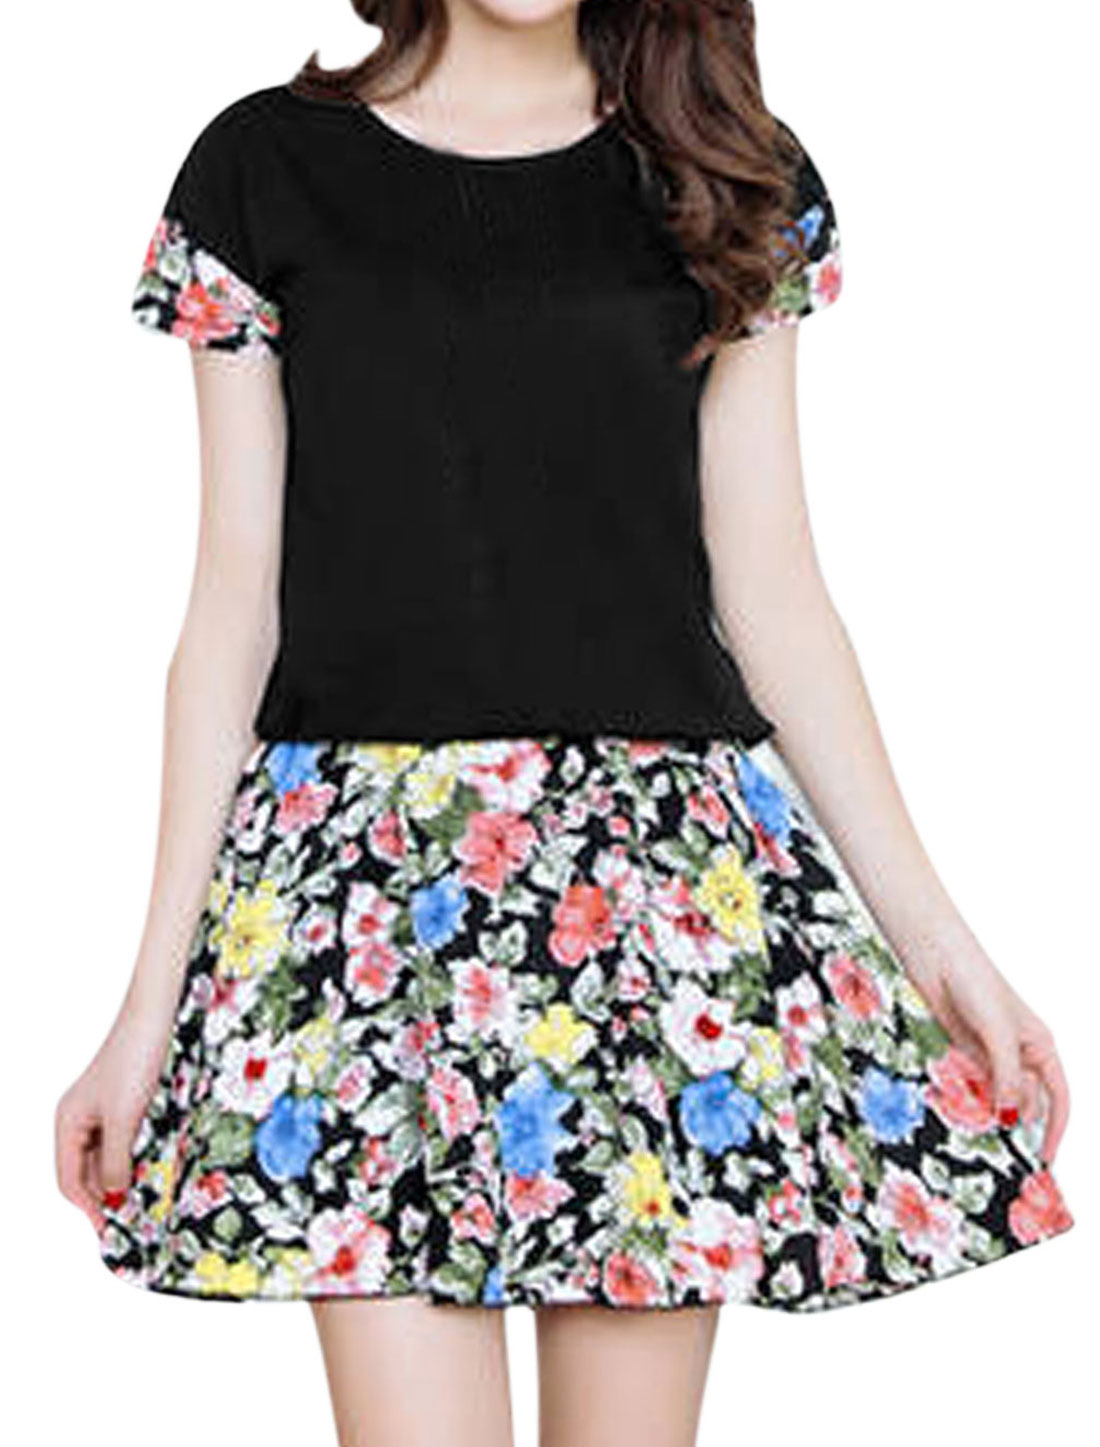 Lady's Short Sleeve Spliced Floral Prints Stretchy Waist Short Dress Black S